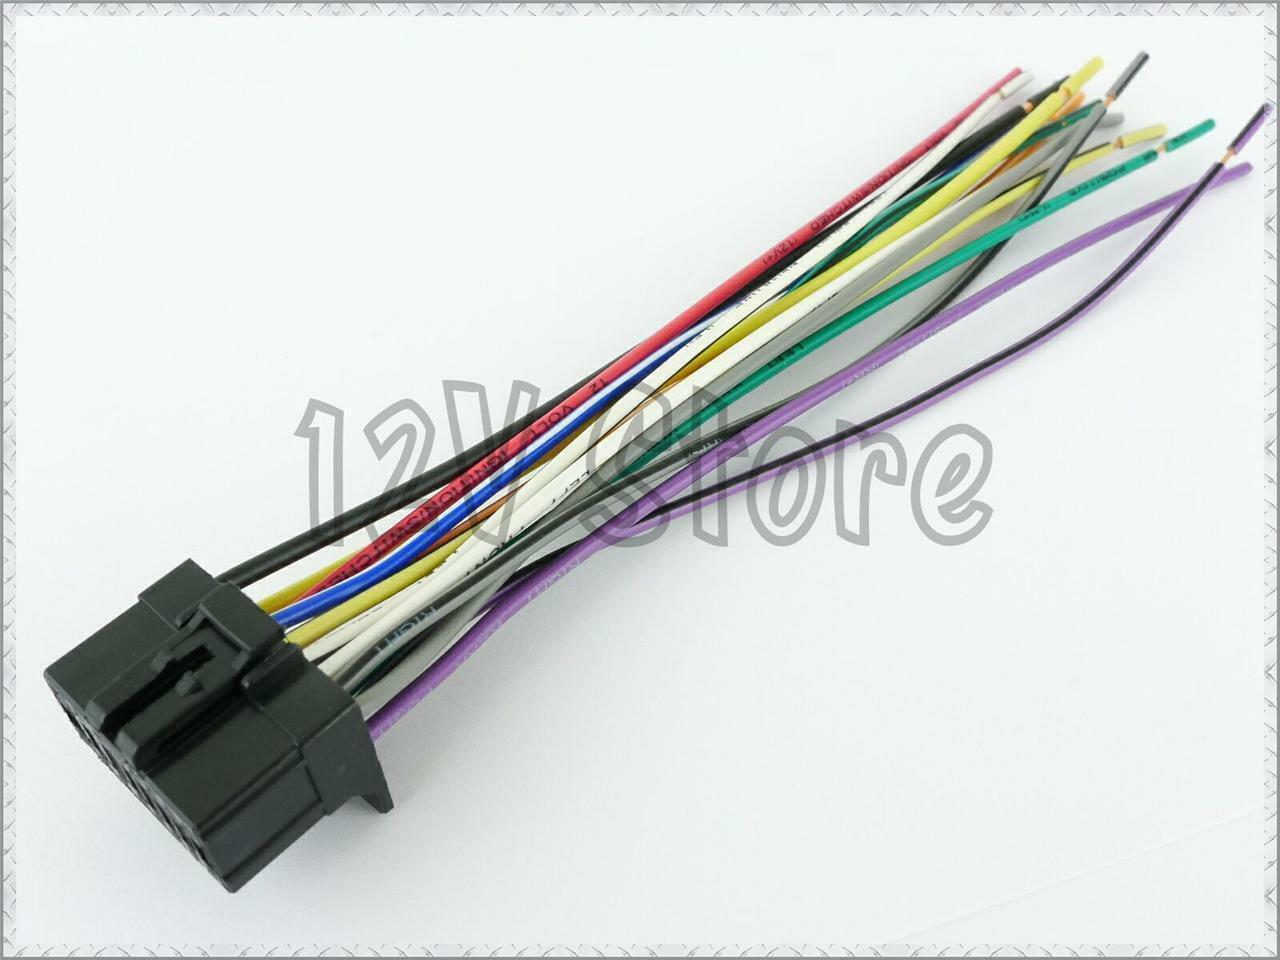 Pioneer Speaker Power Harness Deh P5100ub P5800mp Plug Connector Wiring For 5800 1 Of 1only 5 Available